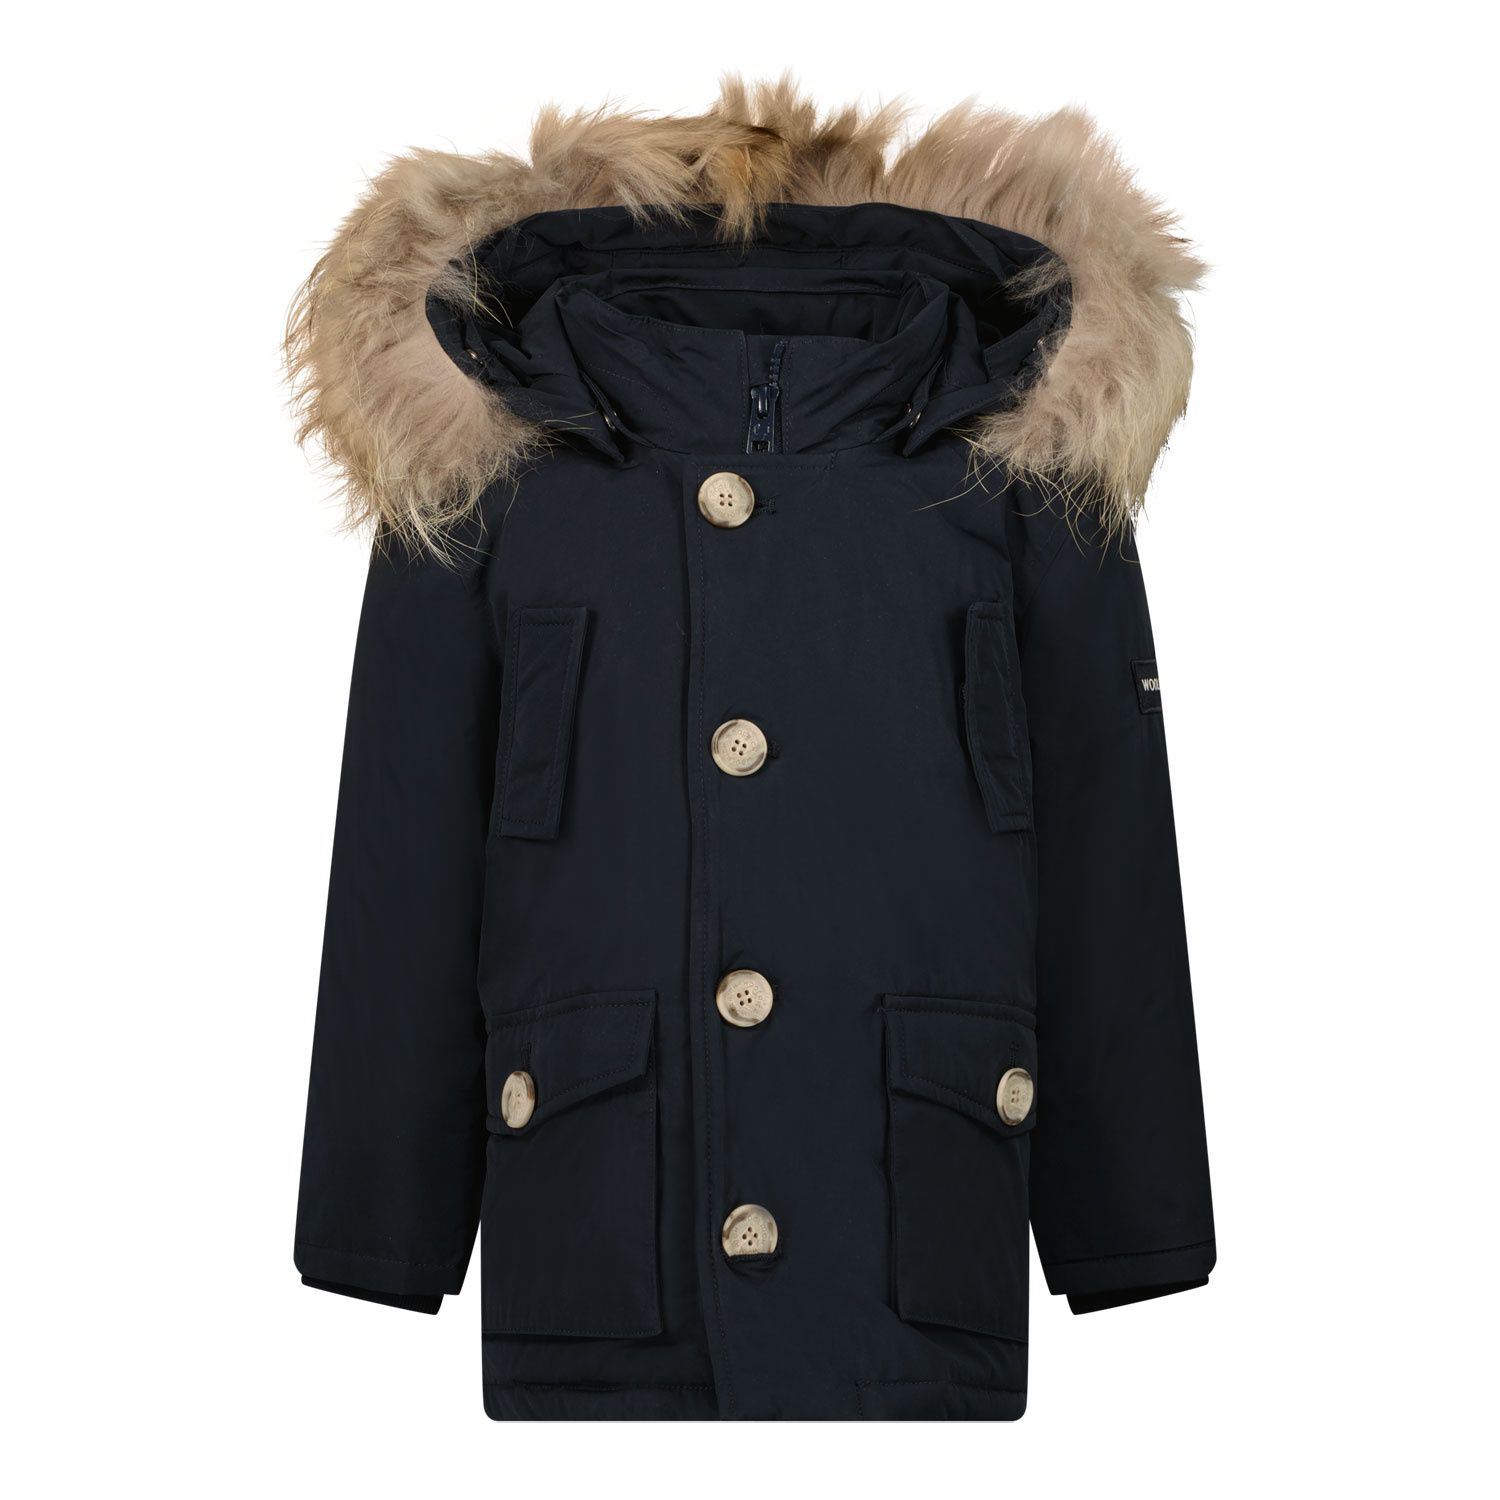 Picture of Woolrich CFWKOU0206 baby coat navy